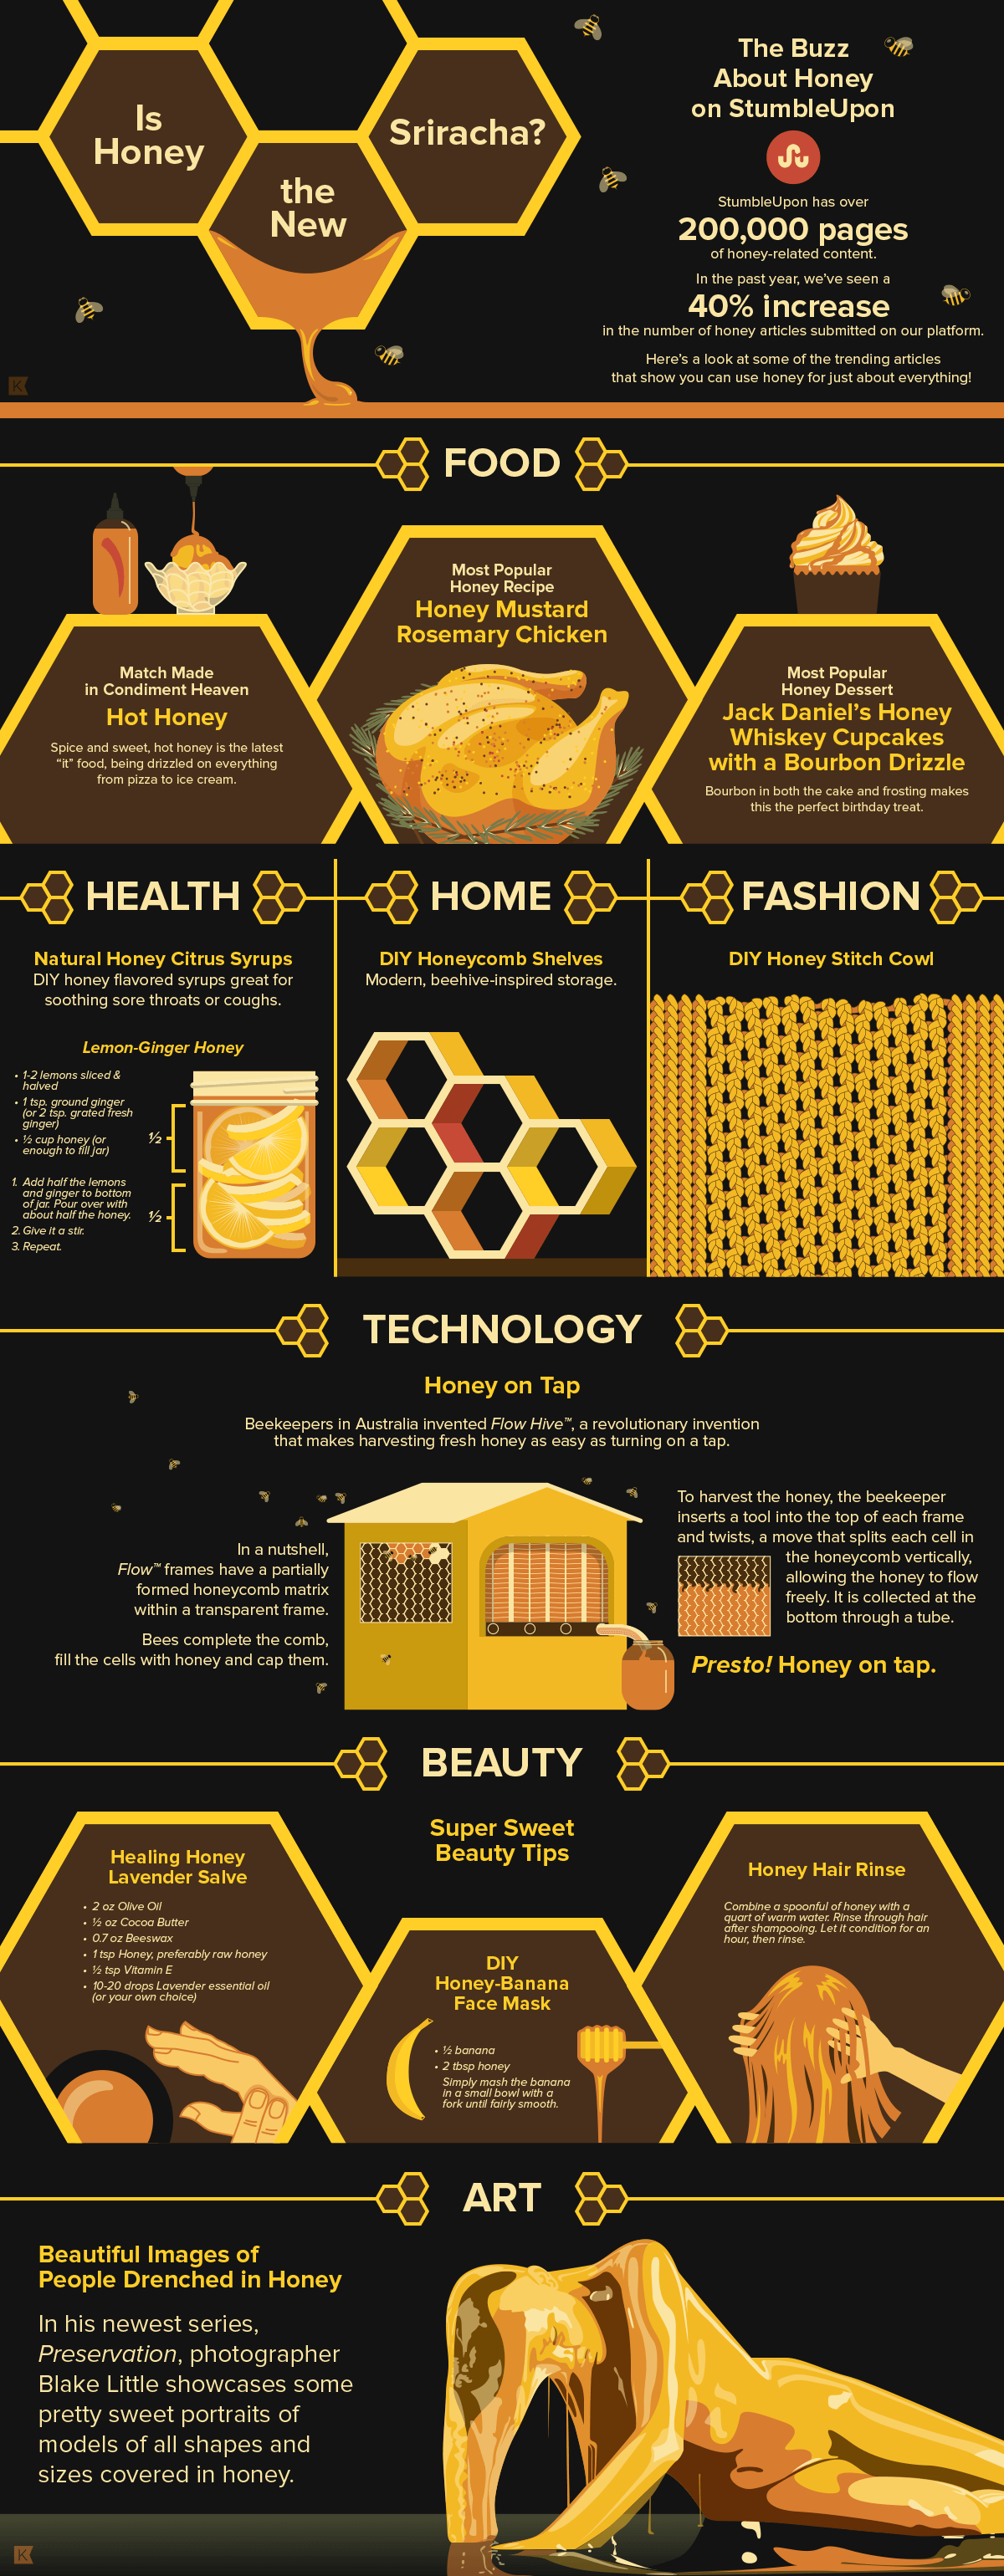 Kowal StumbleUpon Honey Infographic Long 2015-04